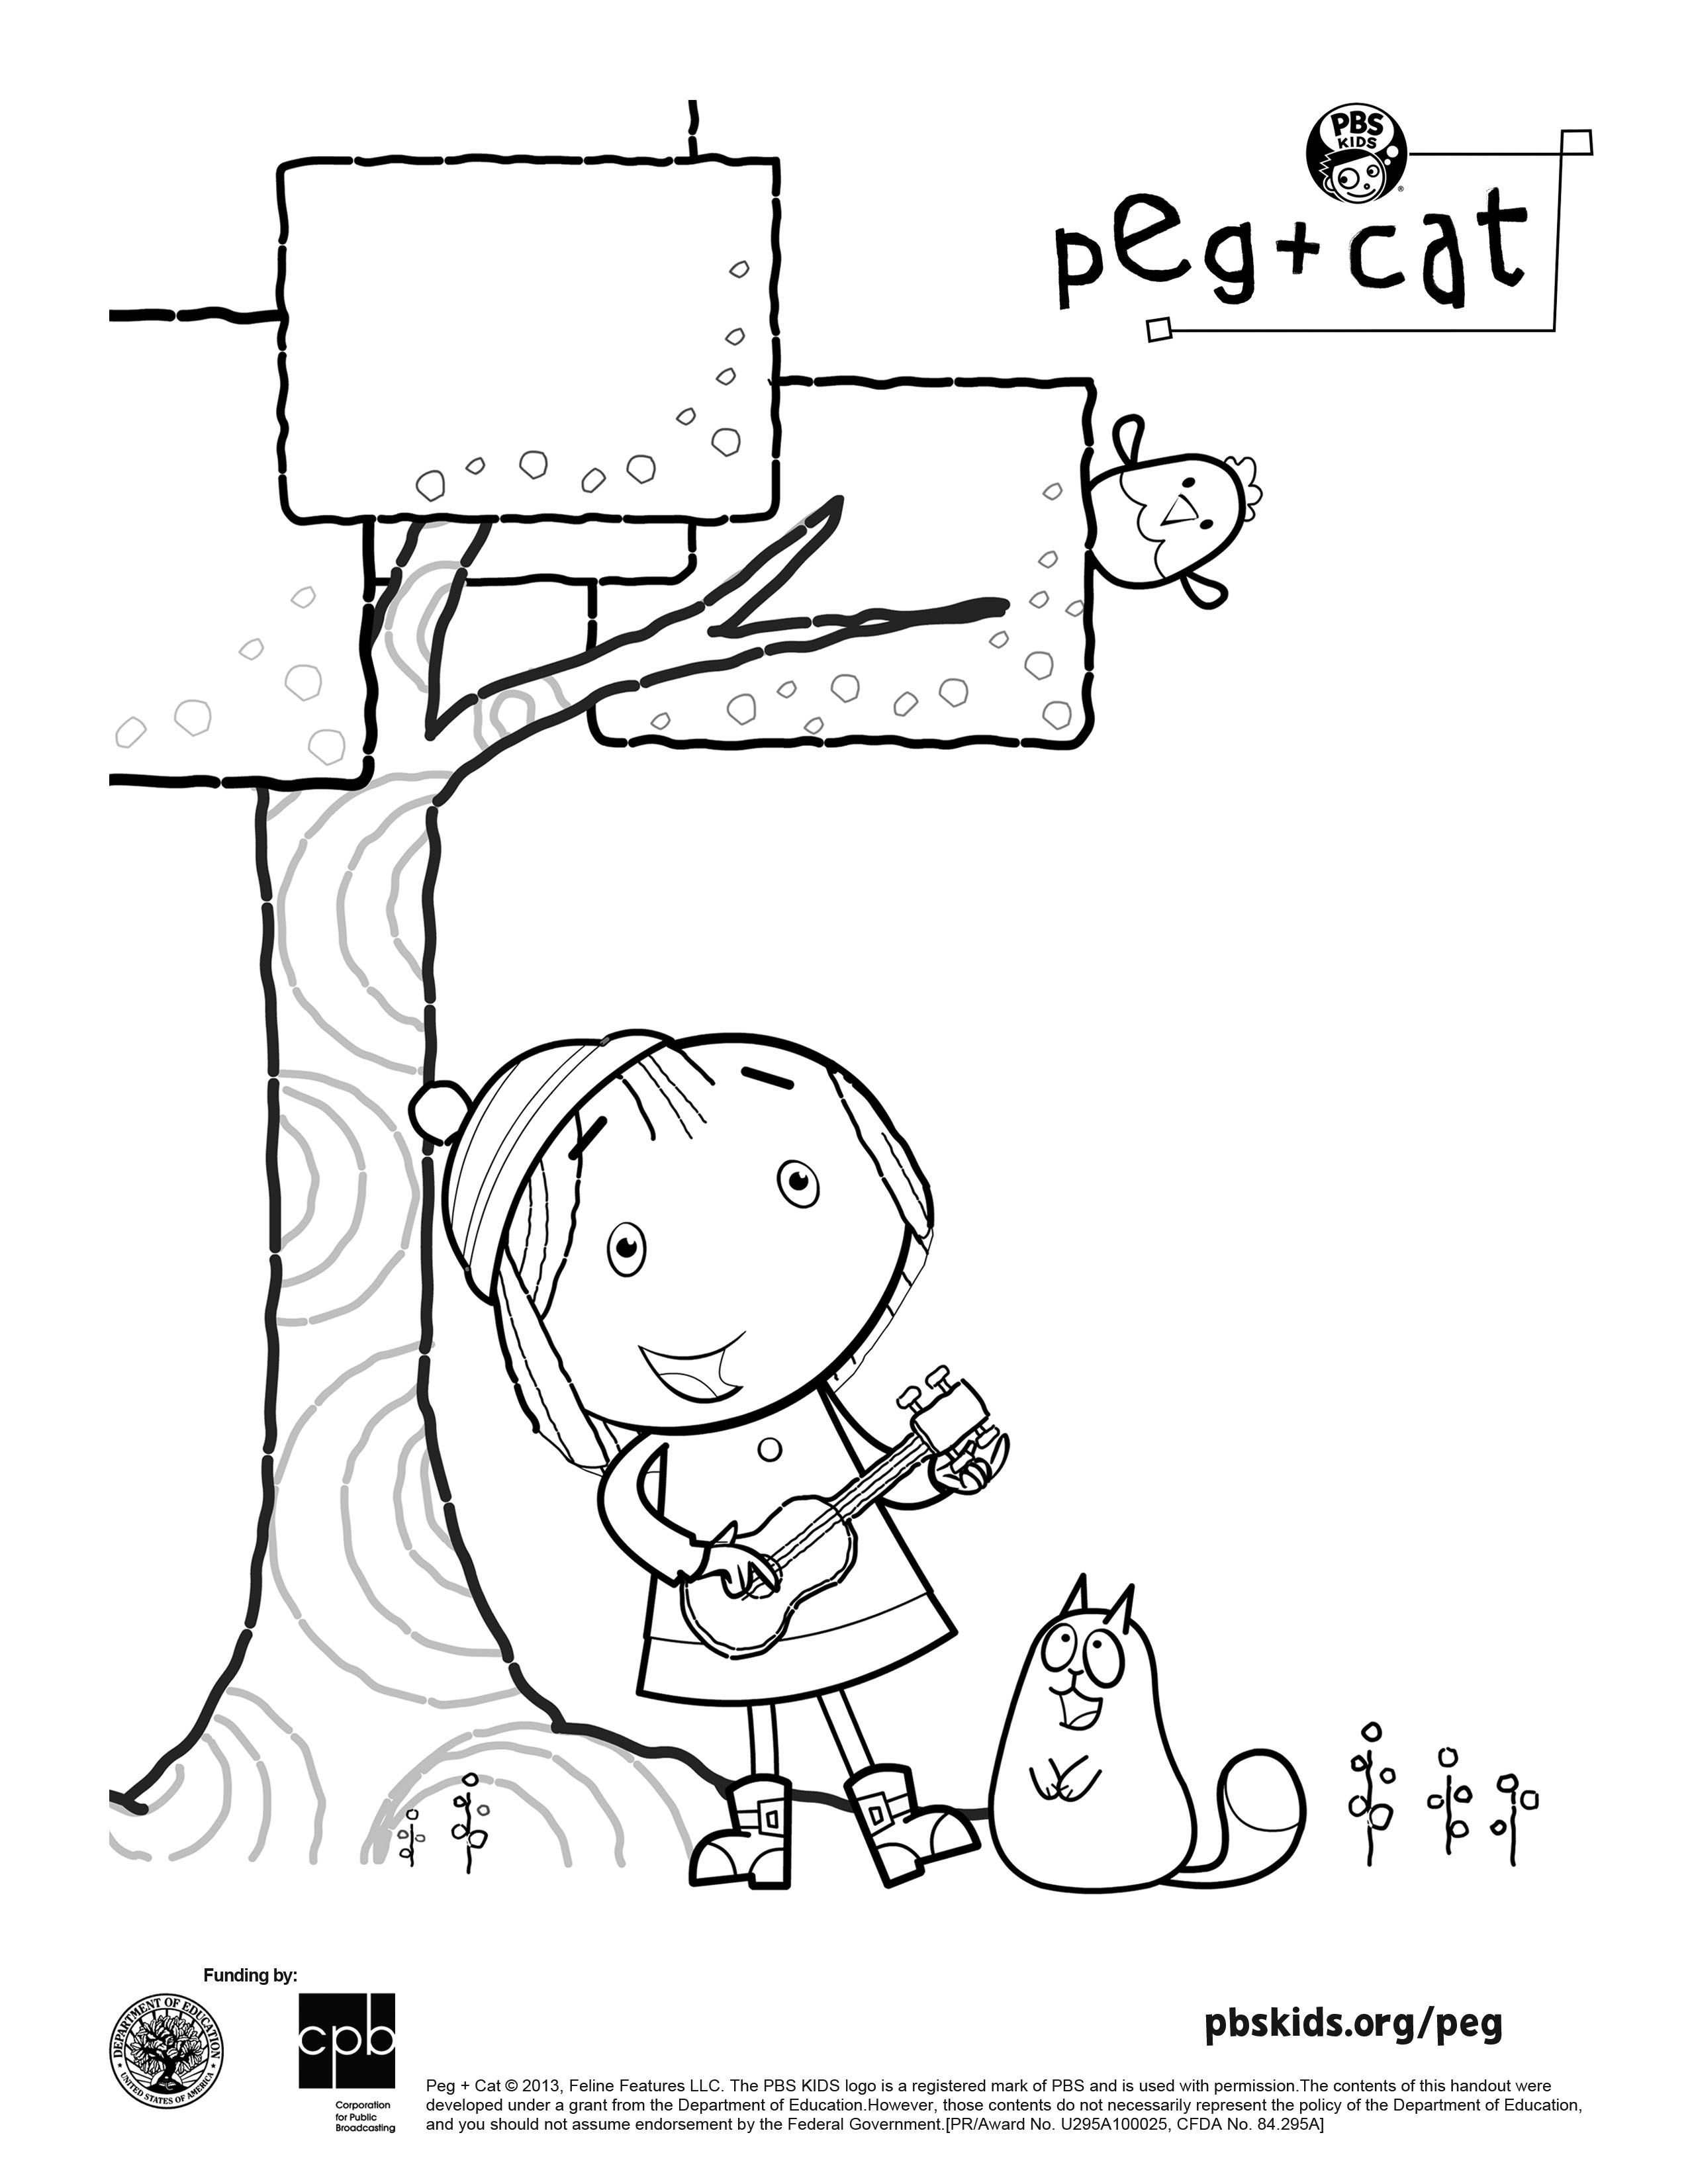 Abc Coloring Pages For Preschoolers Abc Coloring Pages Abc Coloring Peg Plus Cat